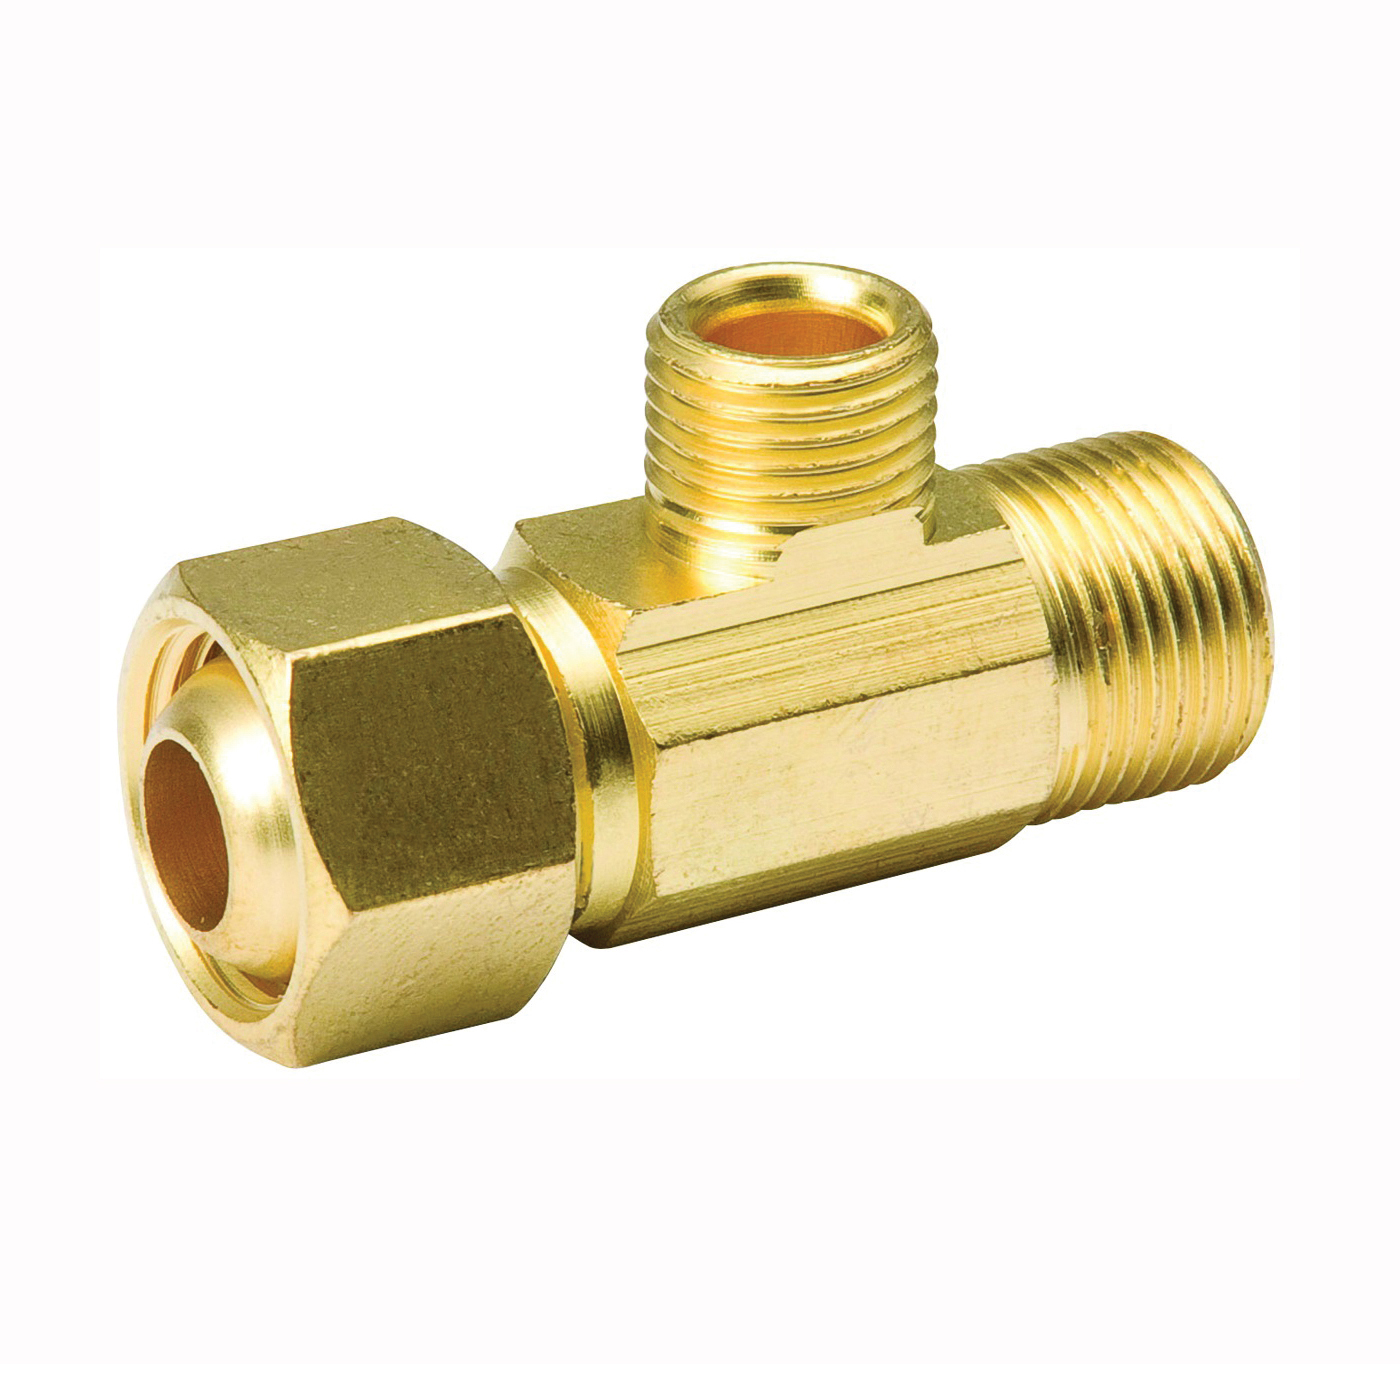 Picture of B & K ProLine 993-015NL Adapter, 3/8 x 1/4 in, Compression, Brass